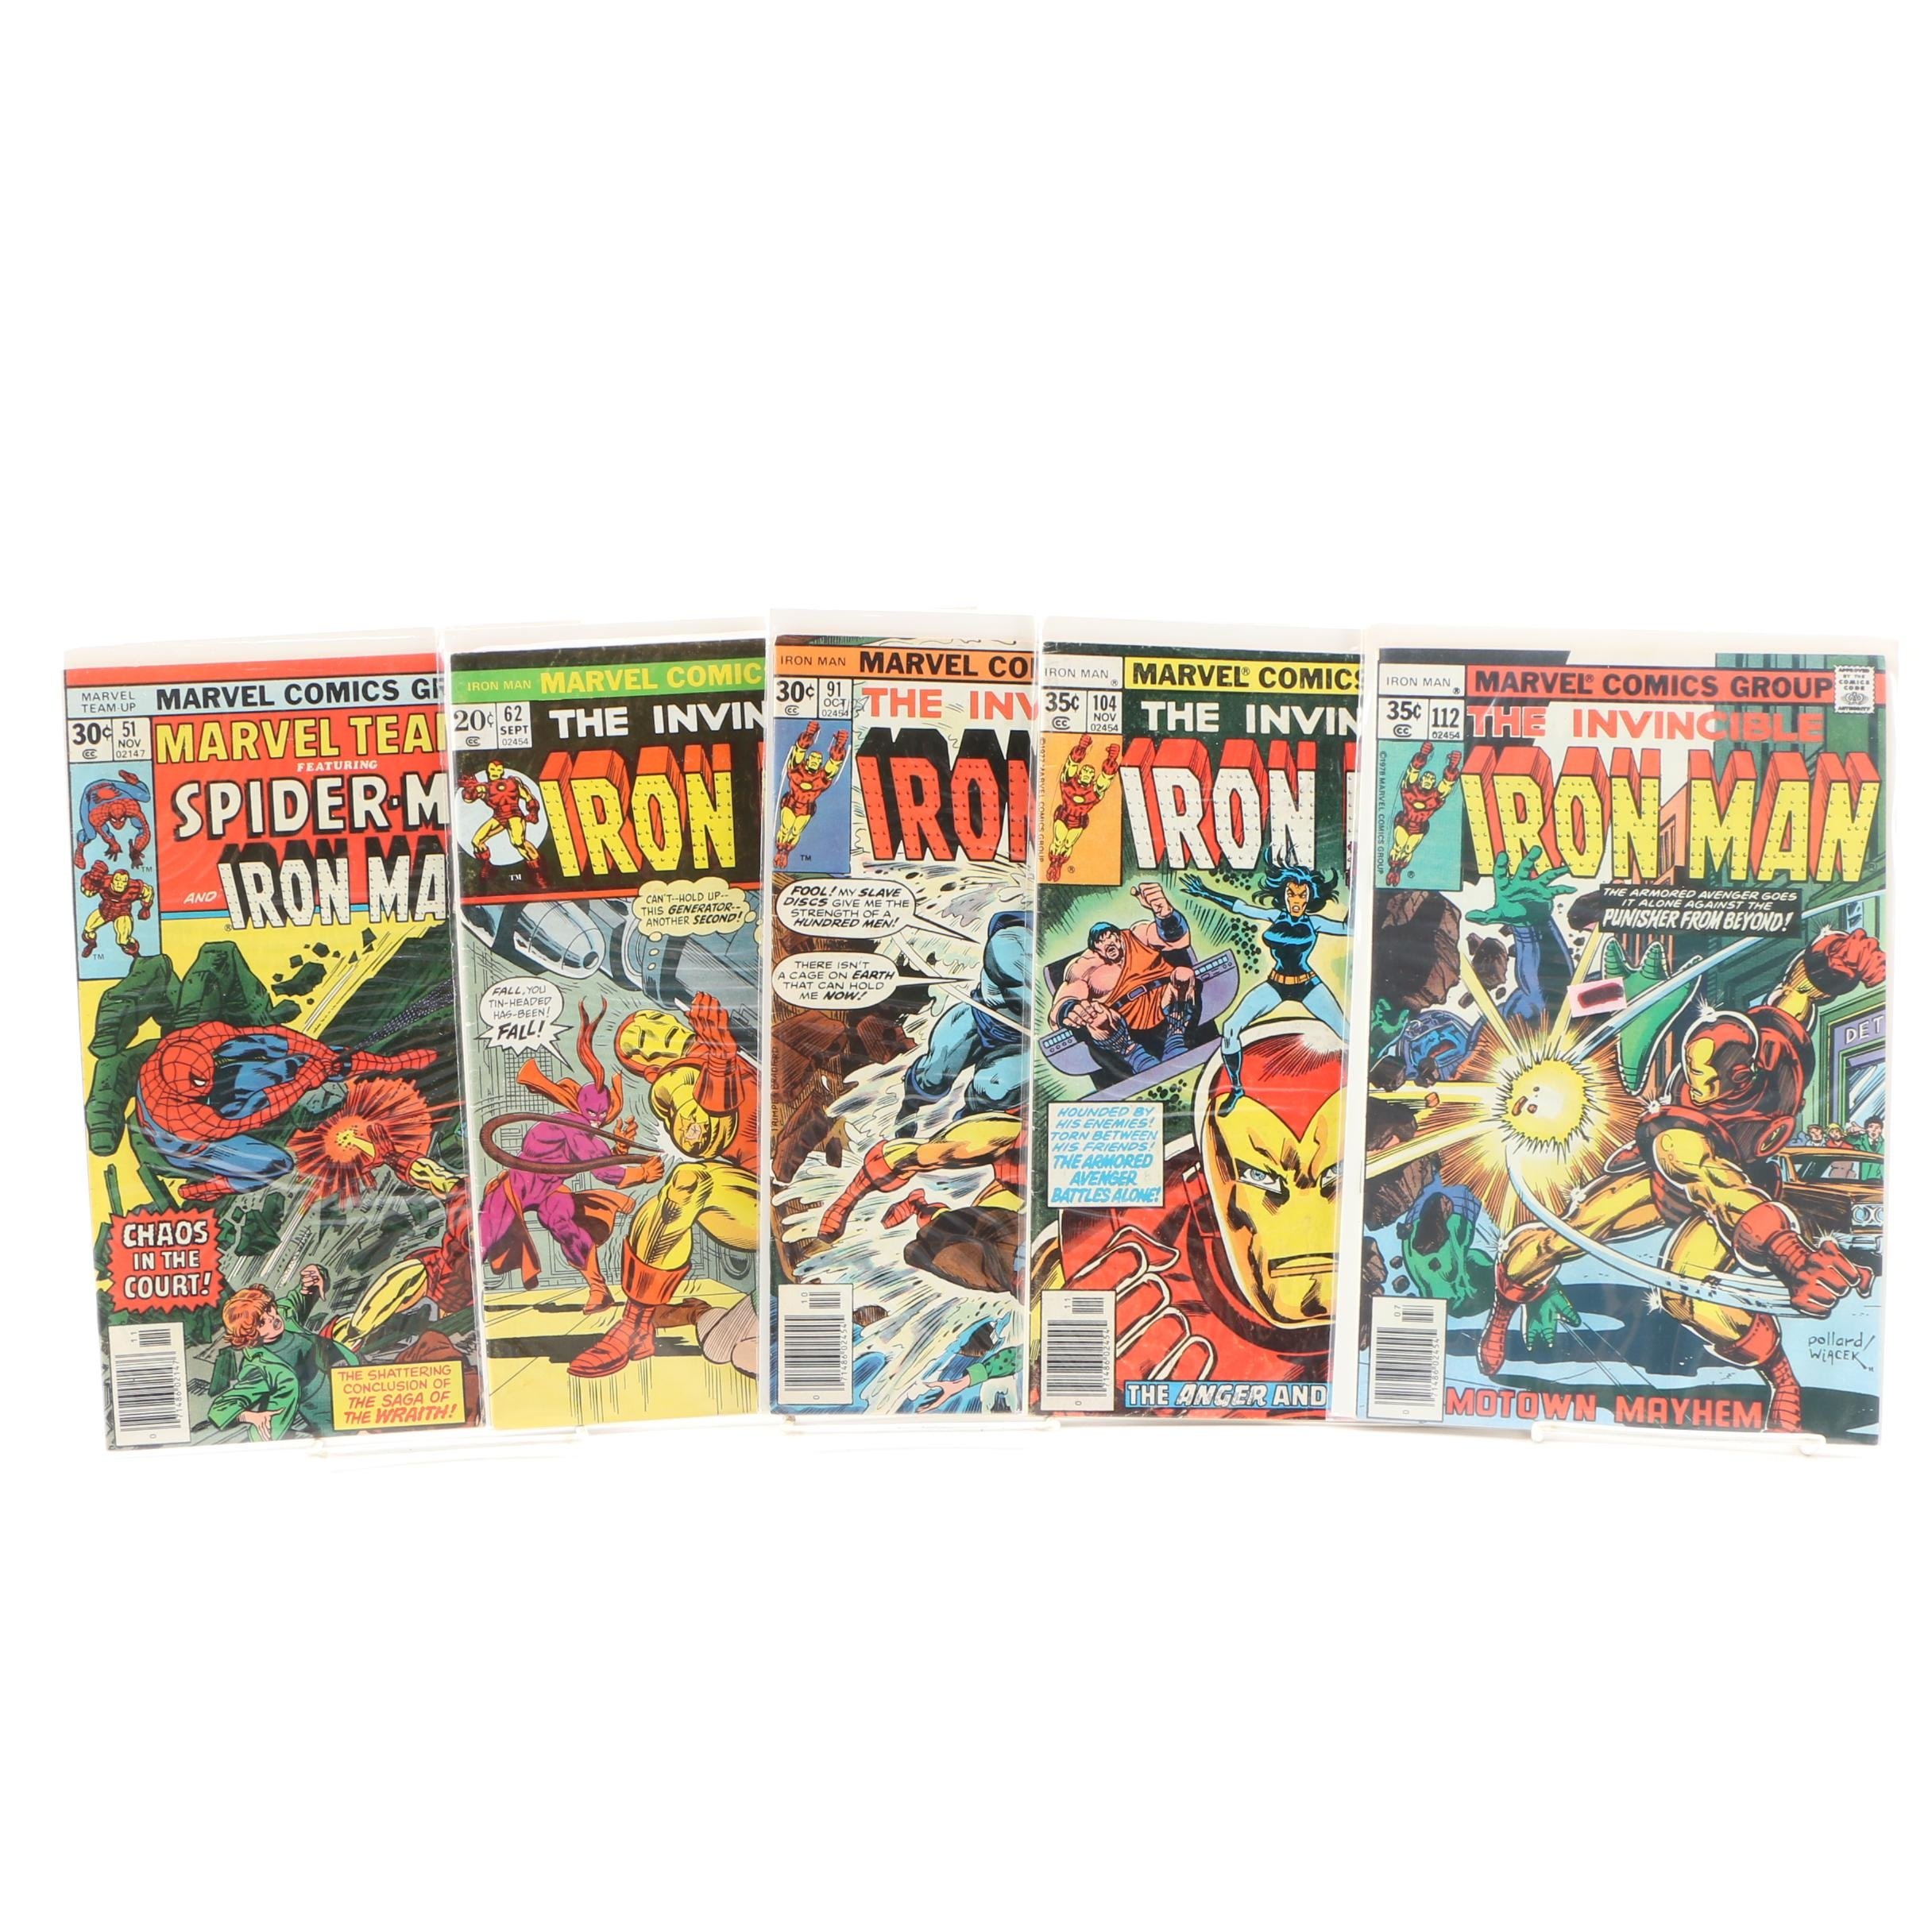 Iron Man Comic Books by Marvel Comics, 1970s